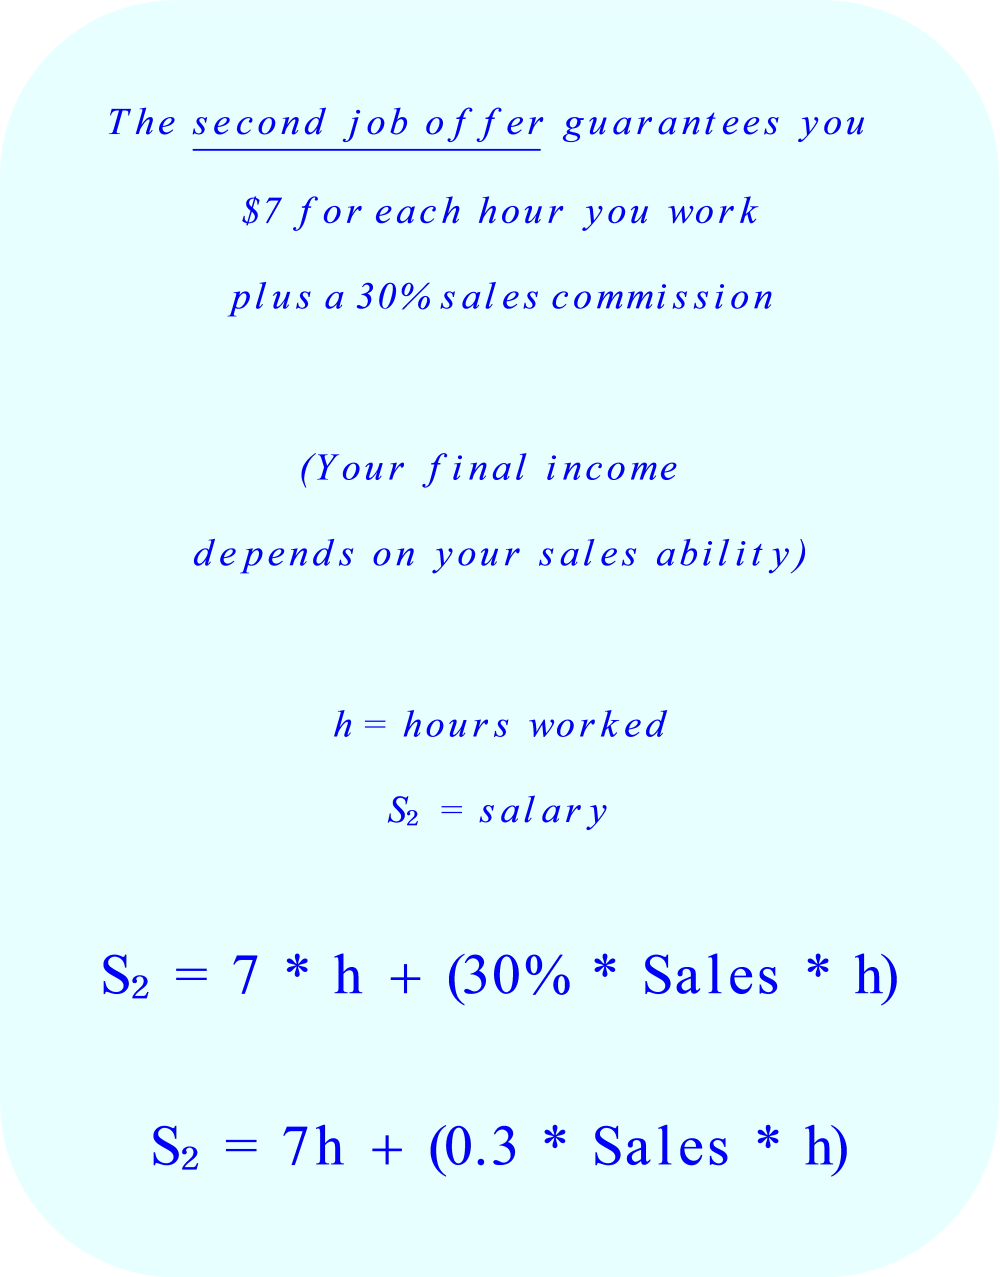 The second job offer guarantees you: